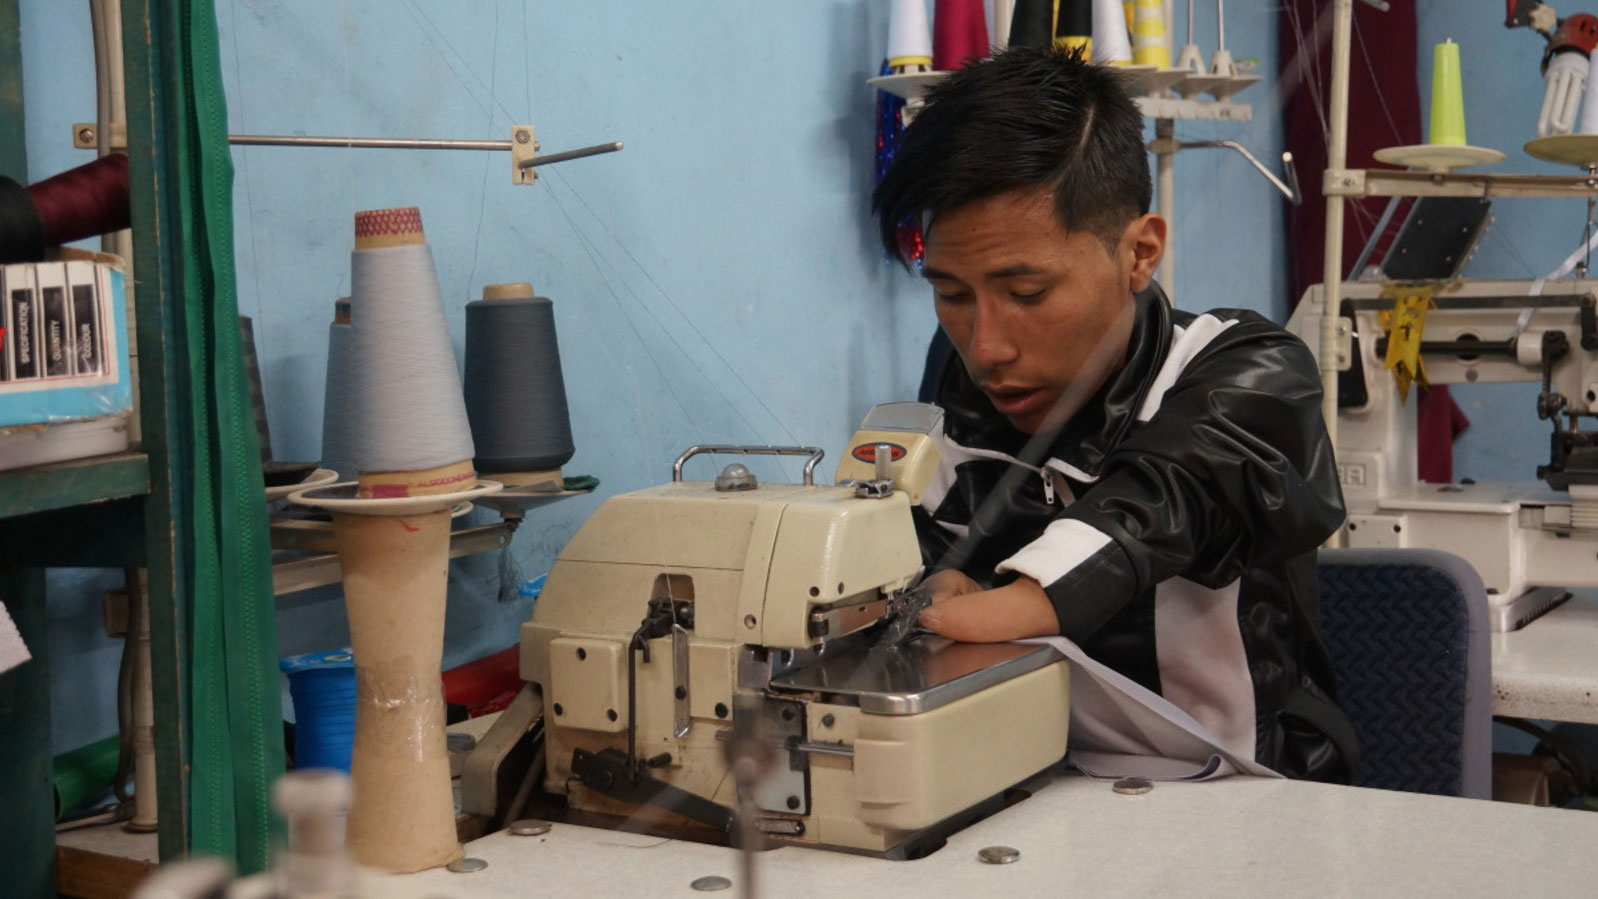 Deymar who has a physical disability sews in Bolivia